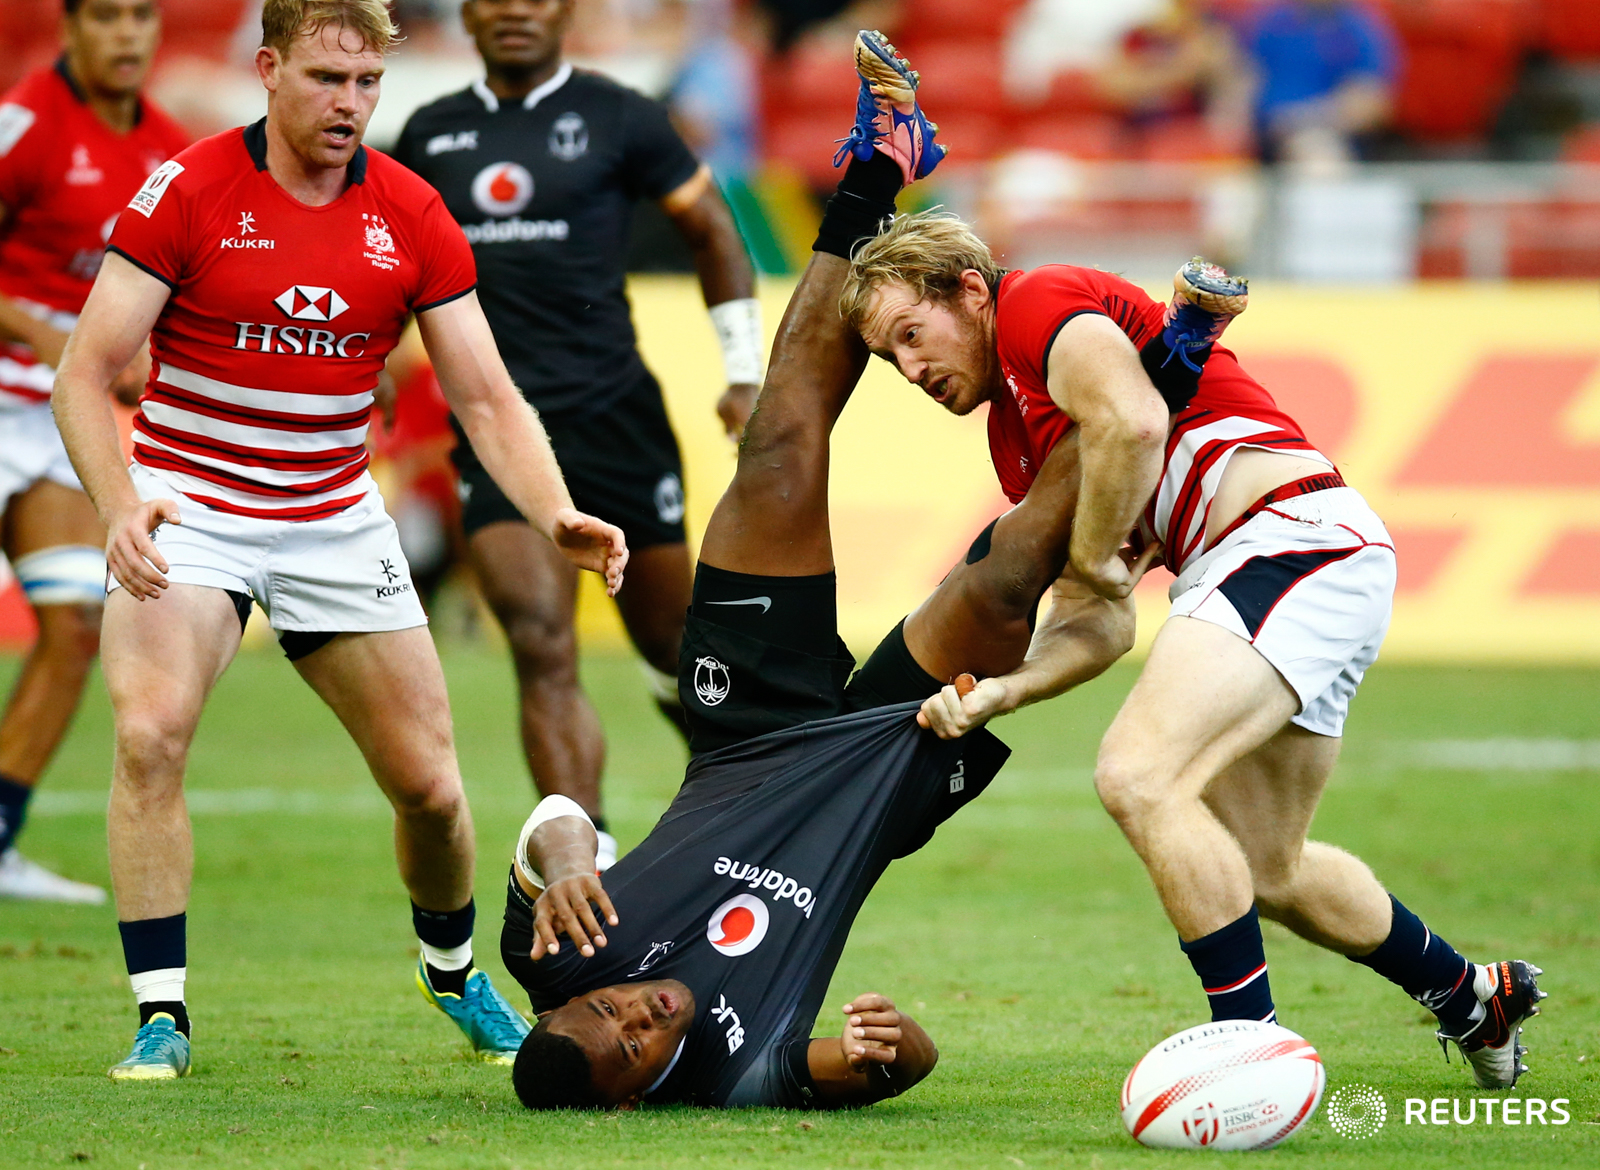 Rugby Union - Singapore Sevens - National Stadium, Singapore, 15/04/17 - Fiji's Amenoni Nasilasila is tackled by Hong Kong's Toby Fenn. REUTERS/Yong Teck Lim